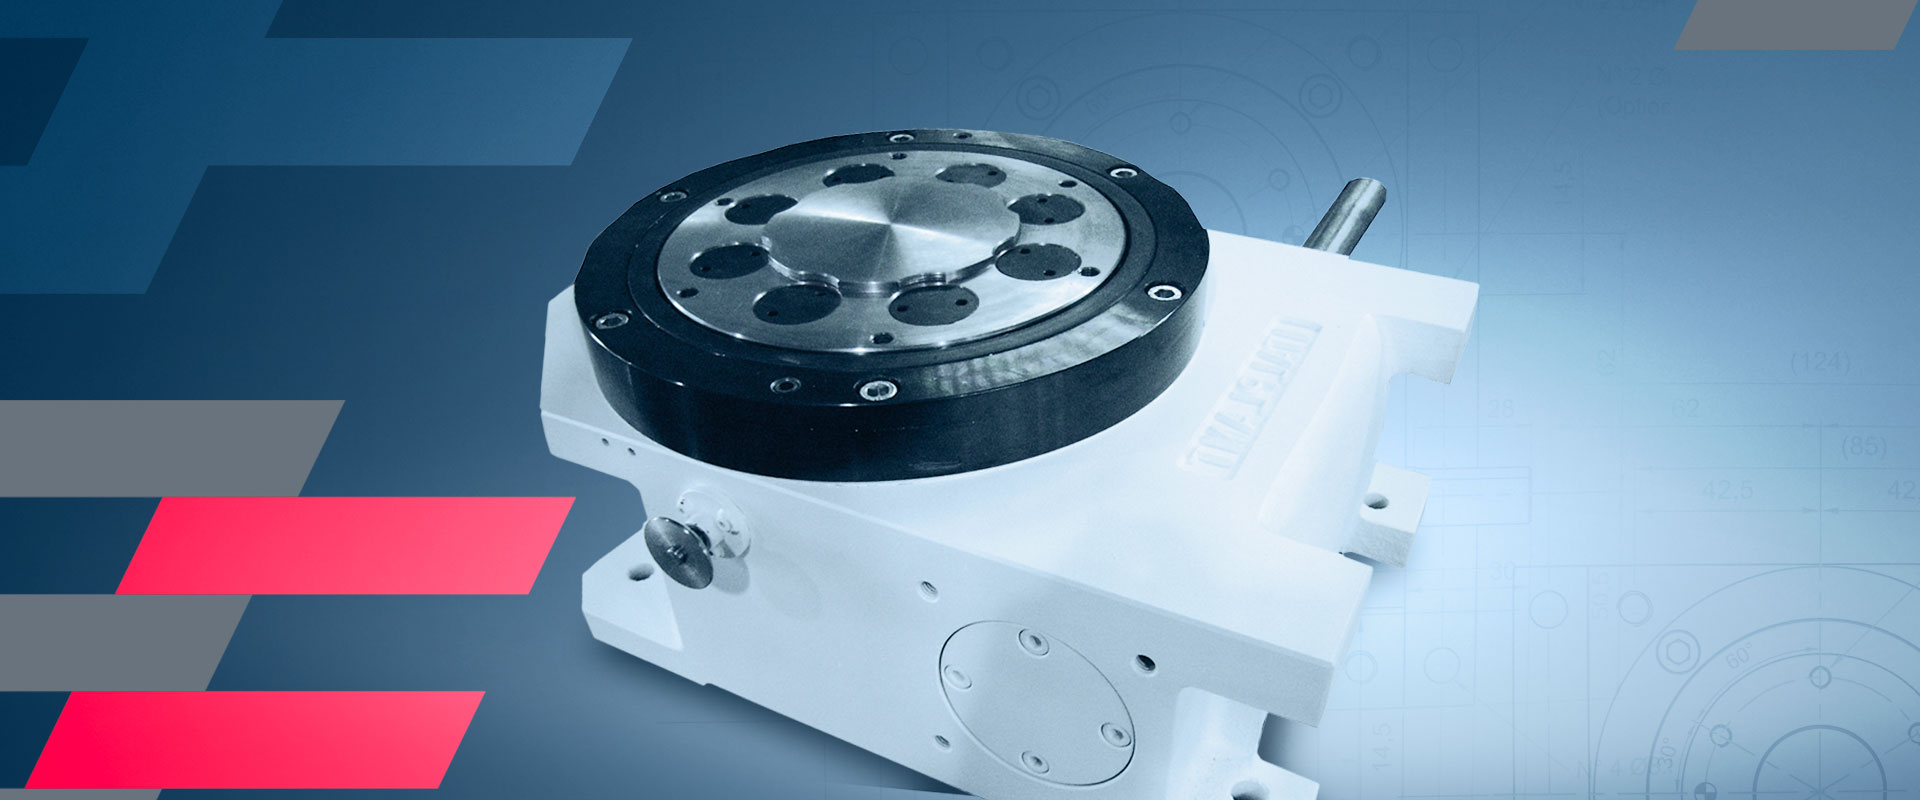 The torque limiter patented by ItalPlant